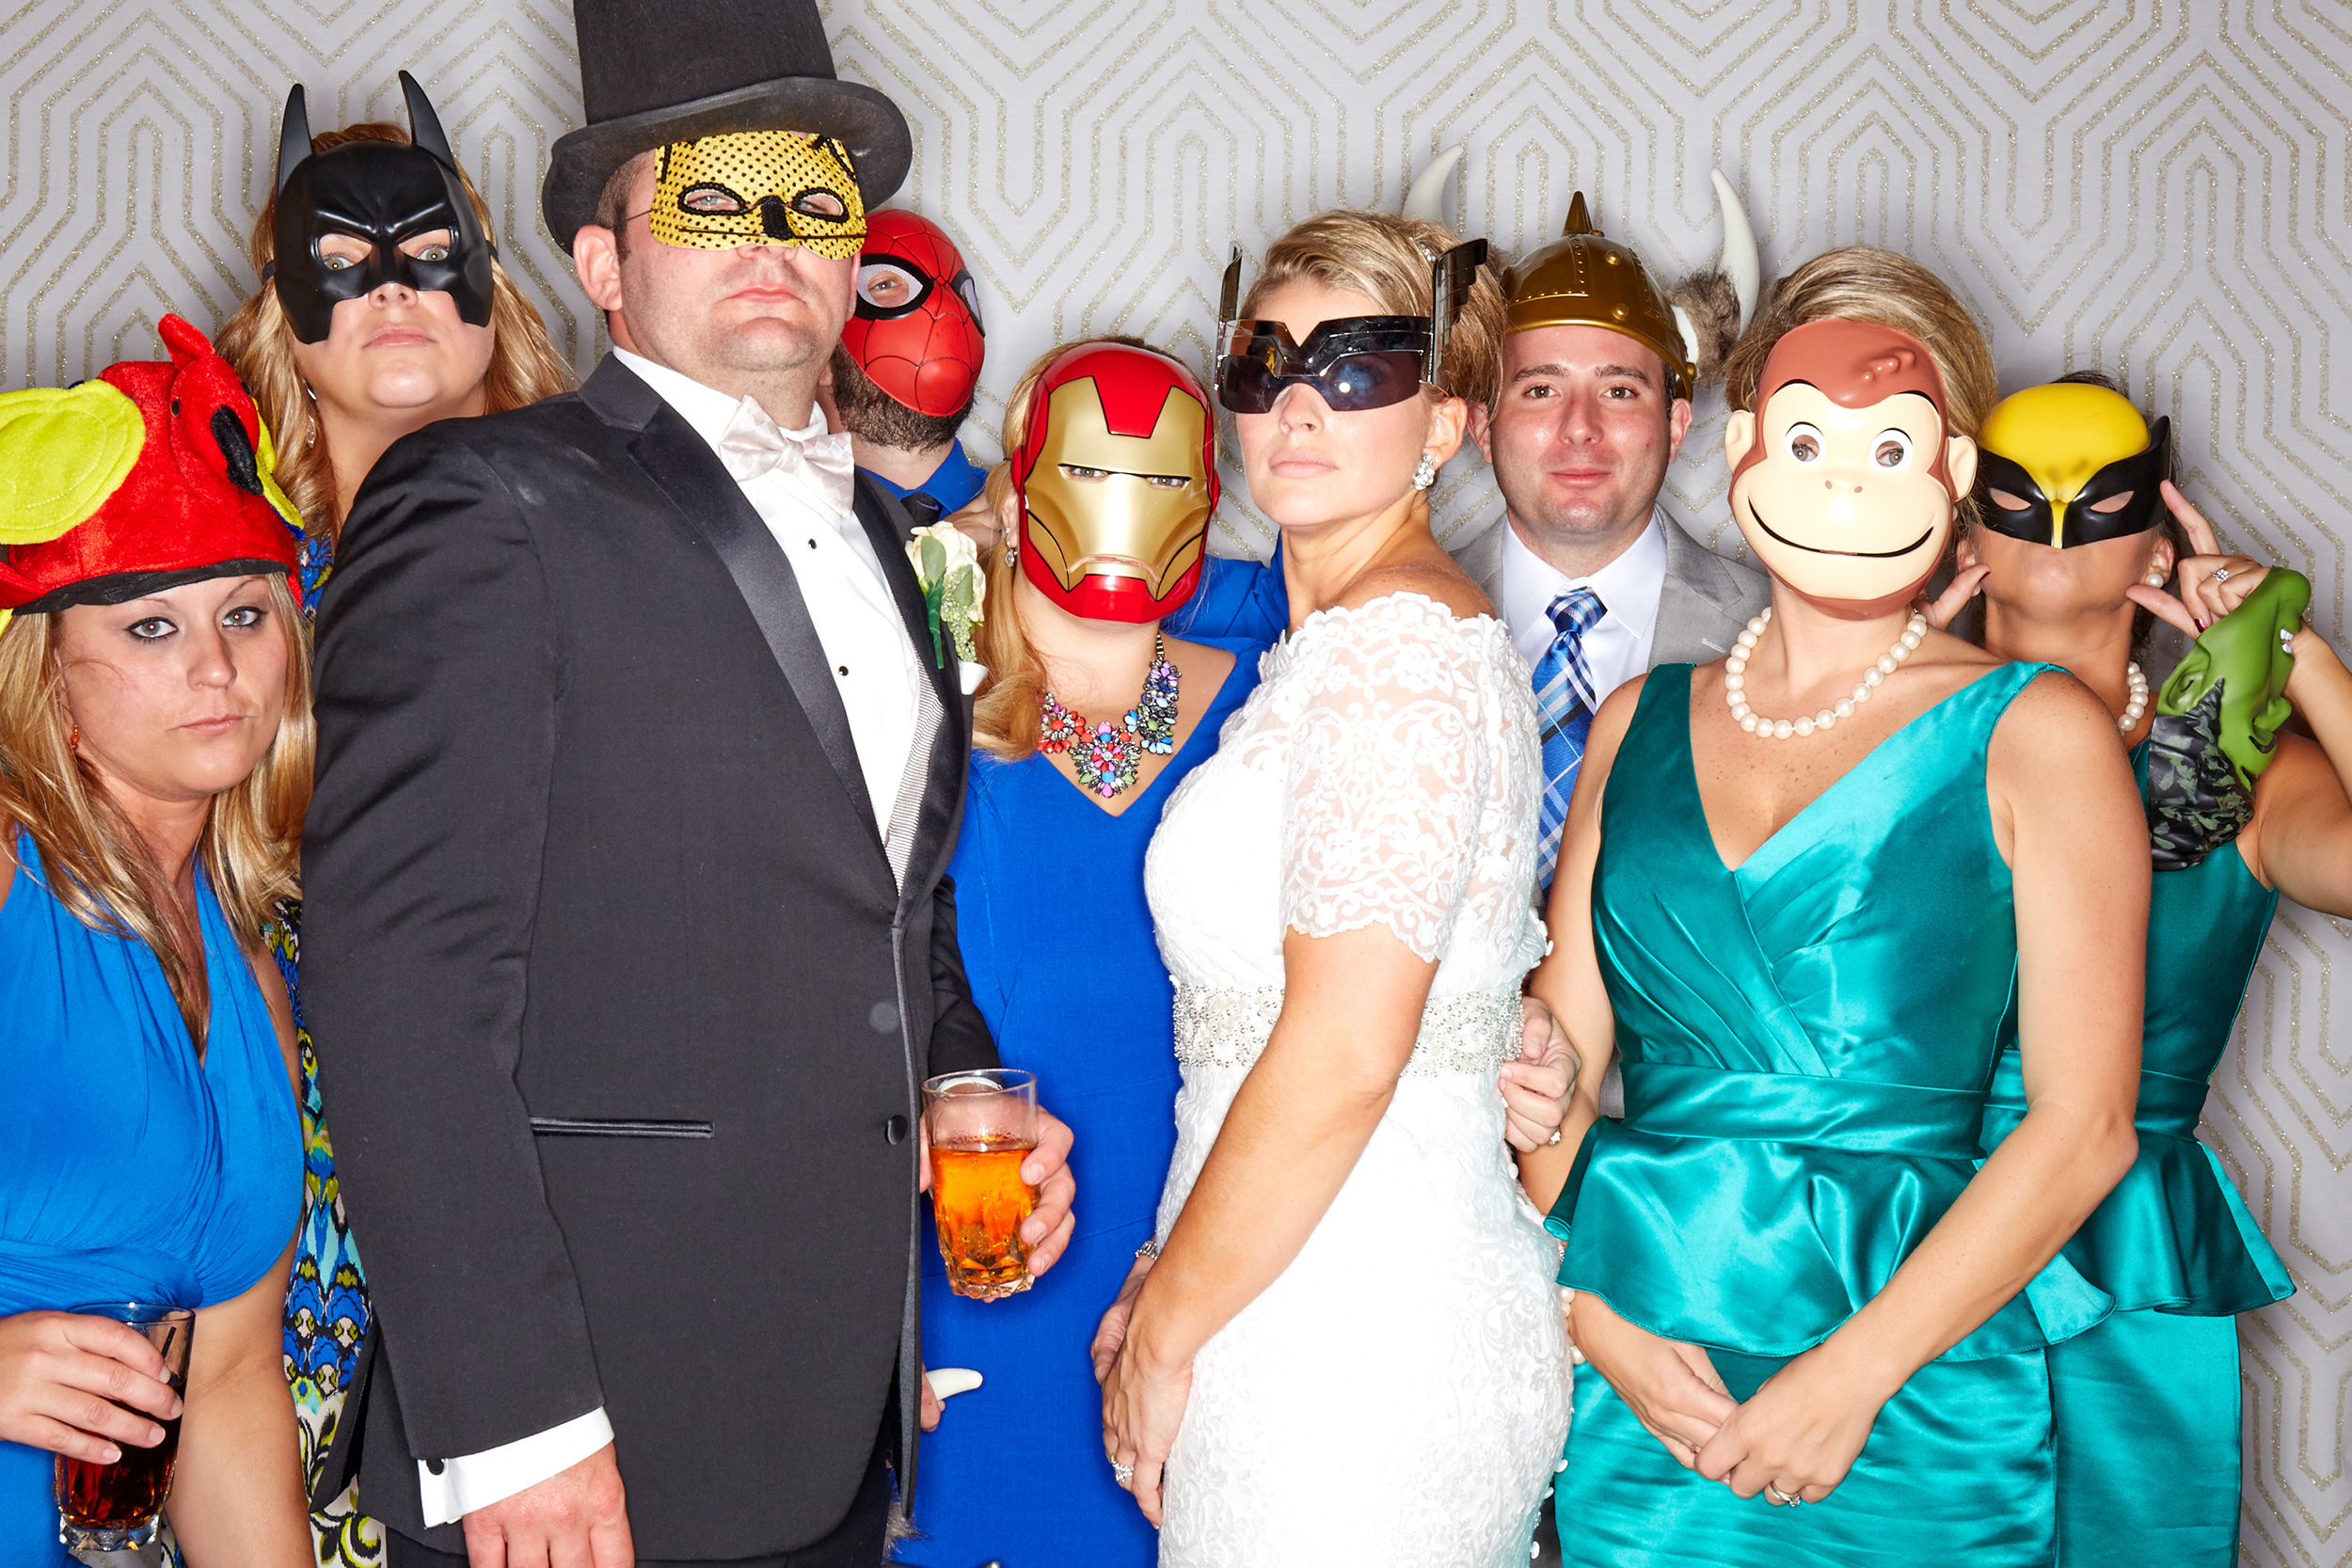 louisville-photo-booth-103.jpg